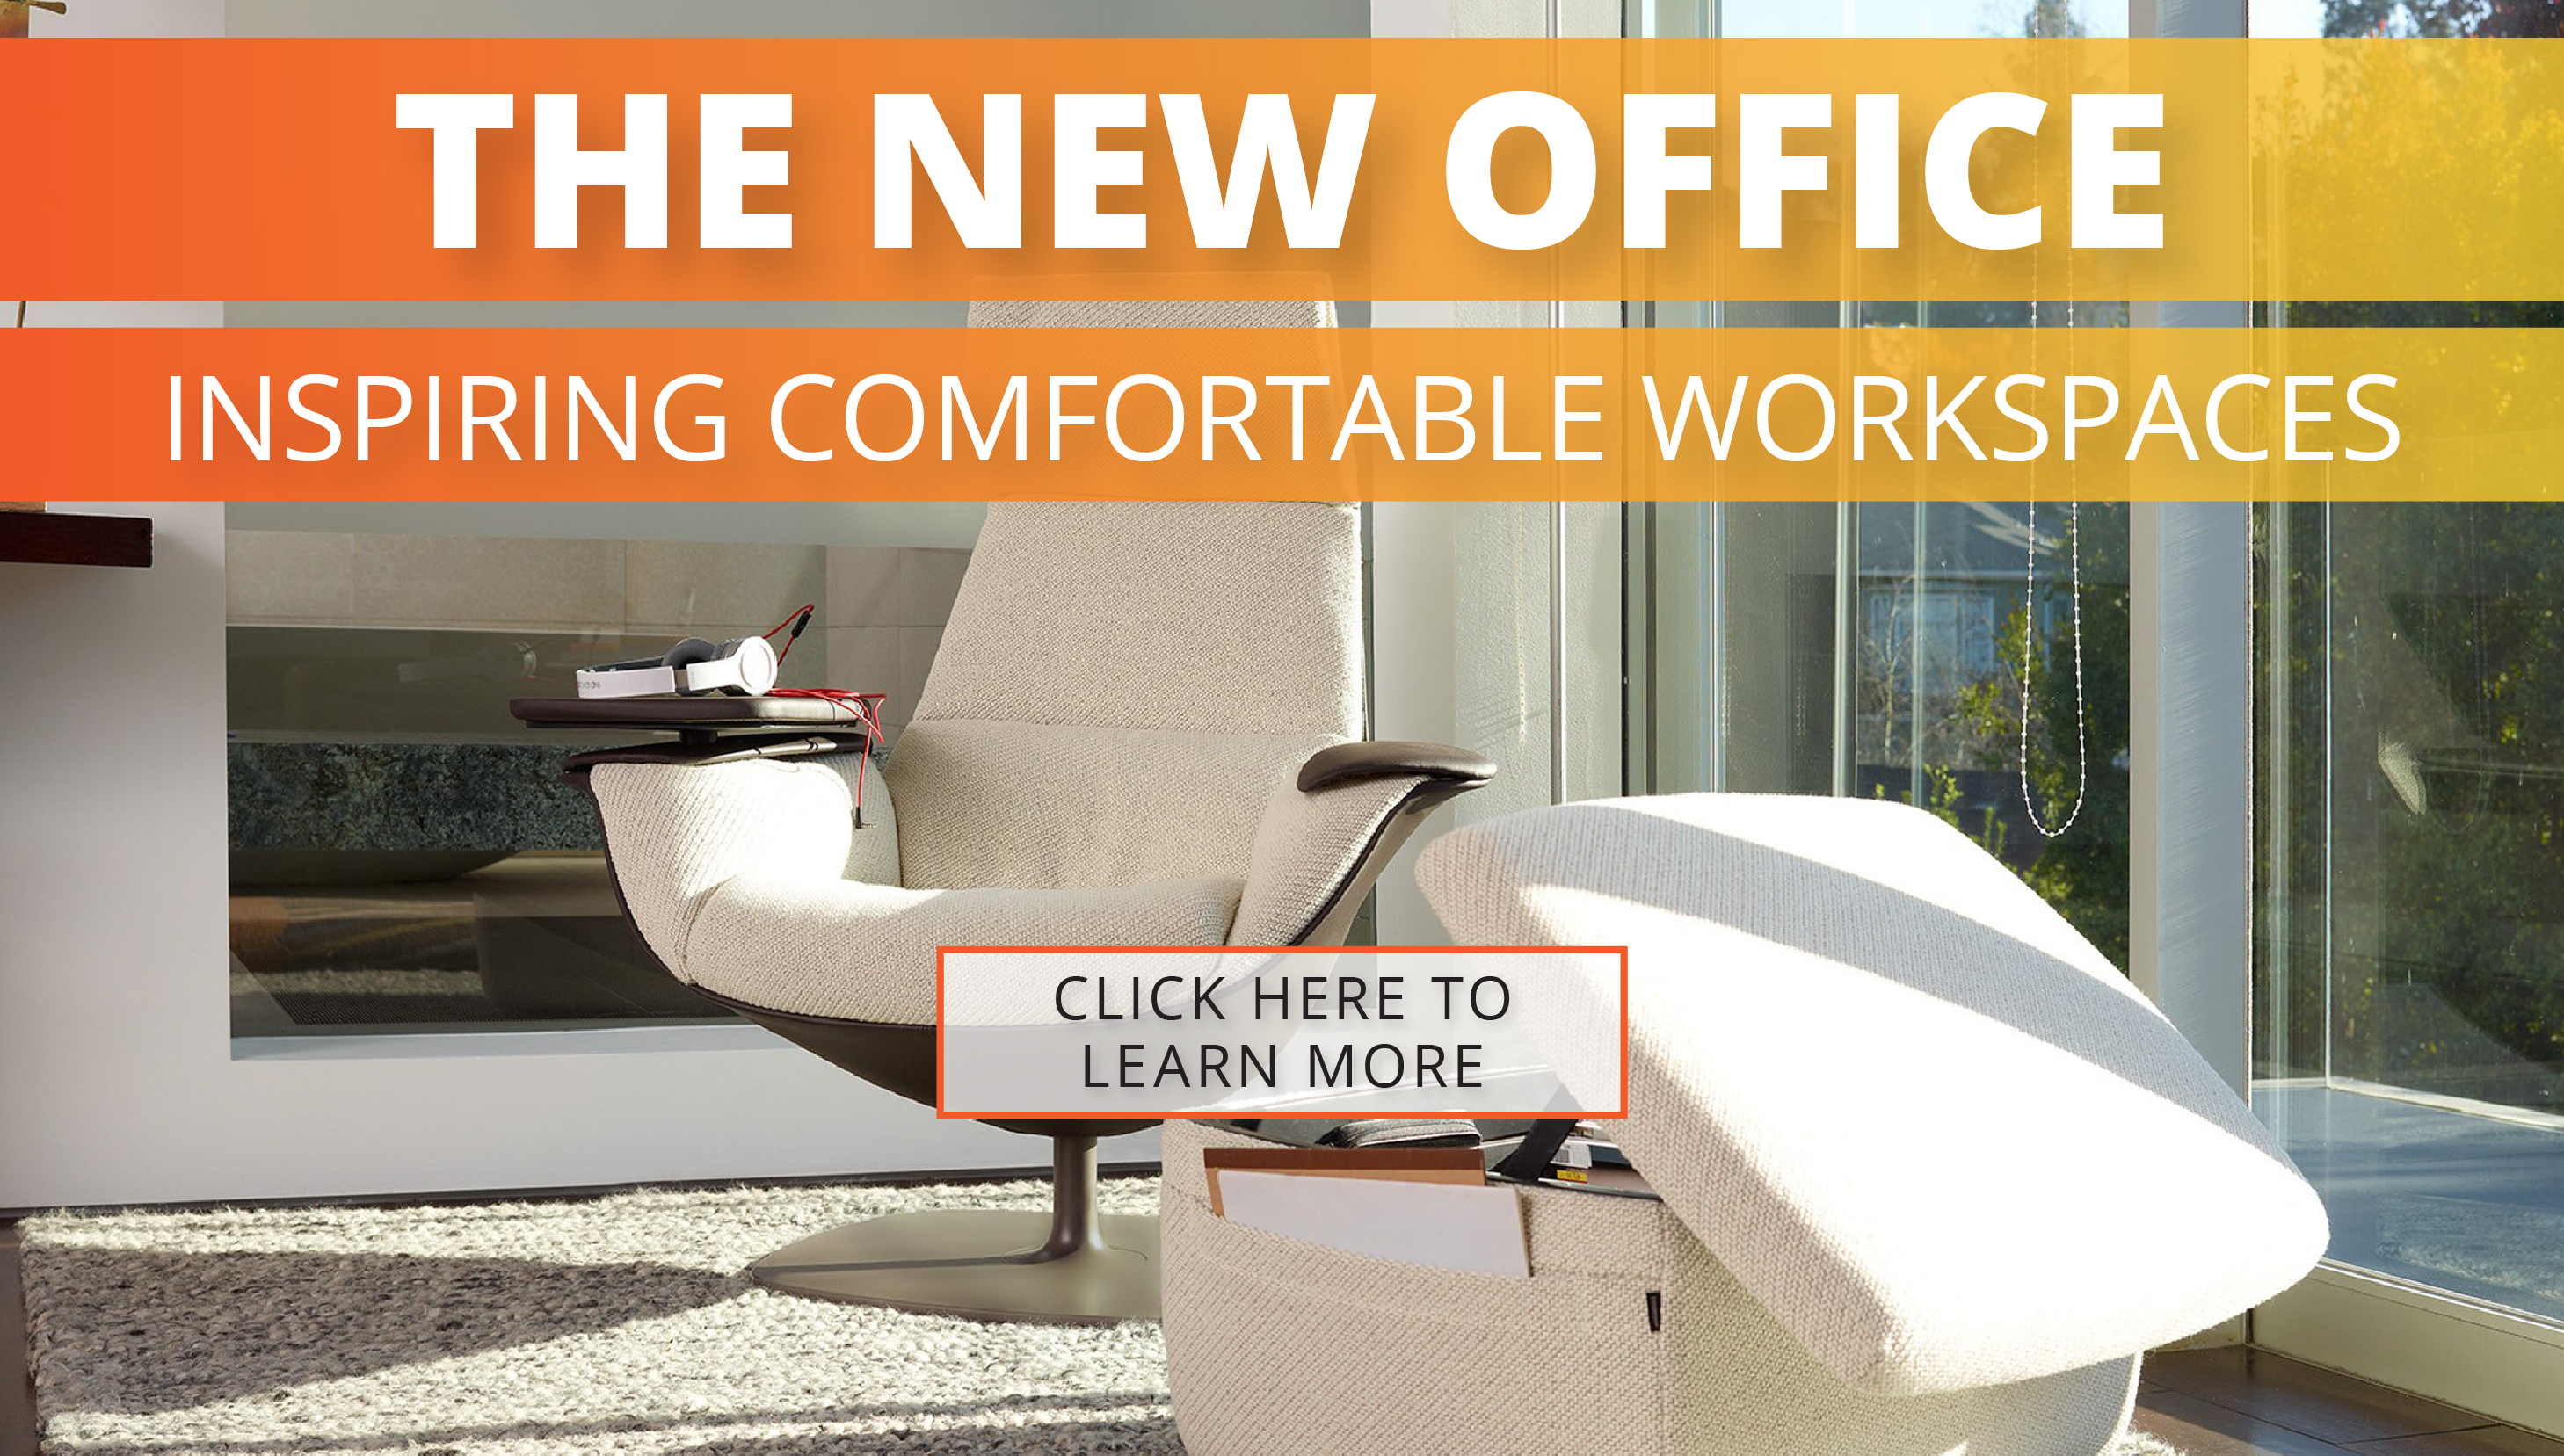 SR_Inpire-Comfortable-Workspaces_Website-Banner-01